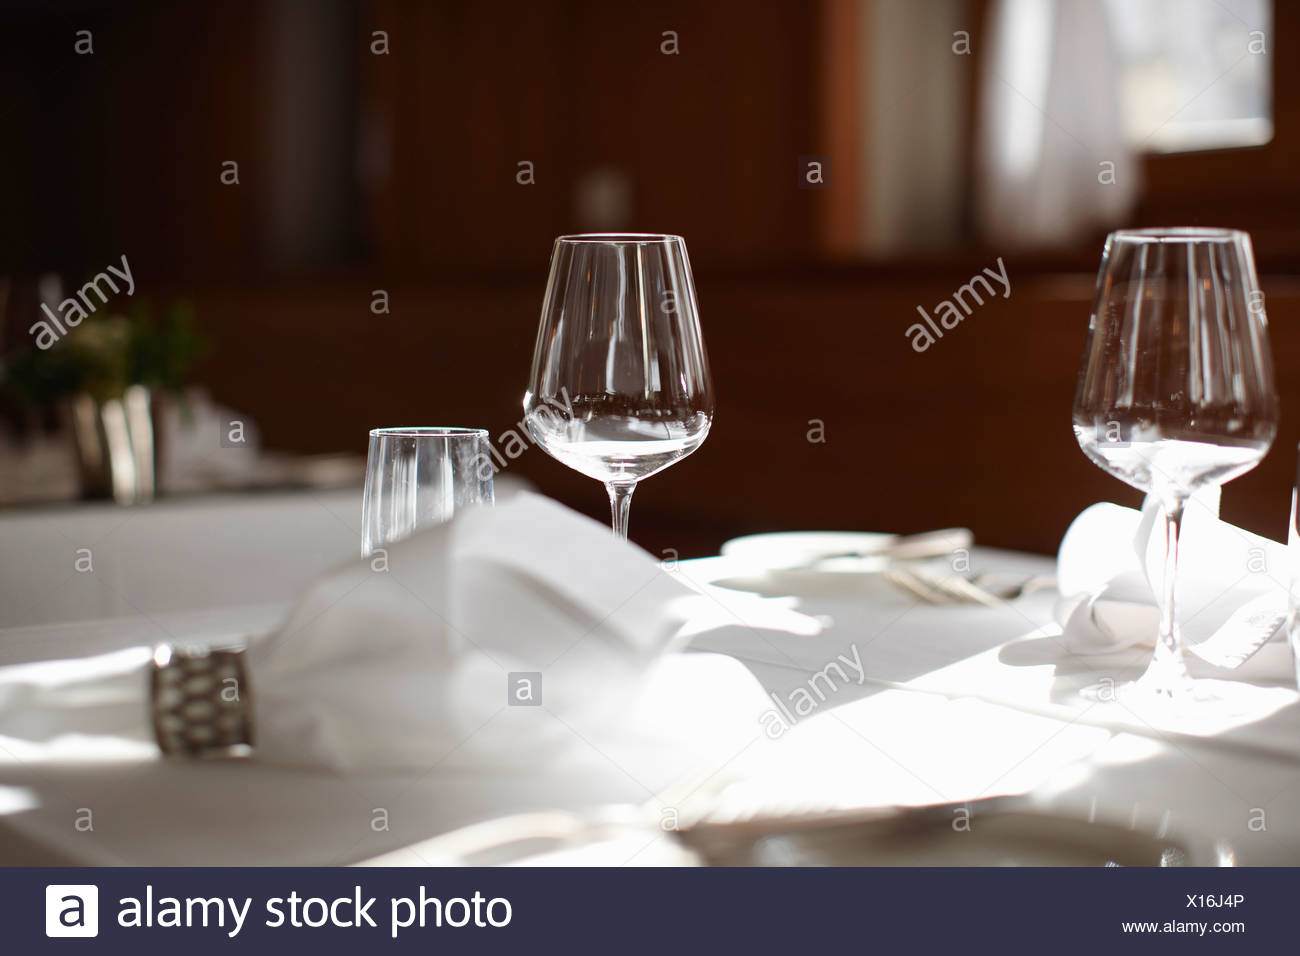 Empty Wine Glass On Table